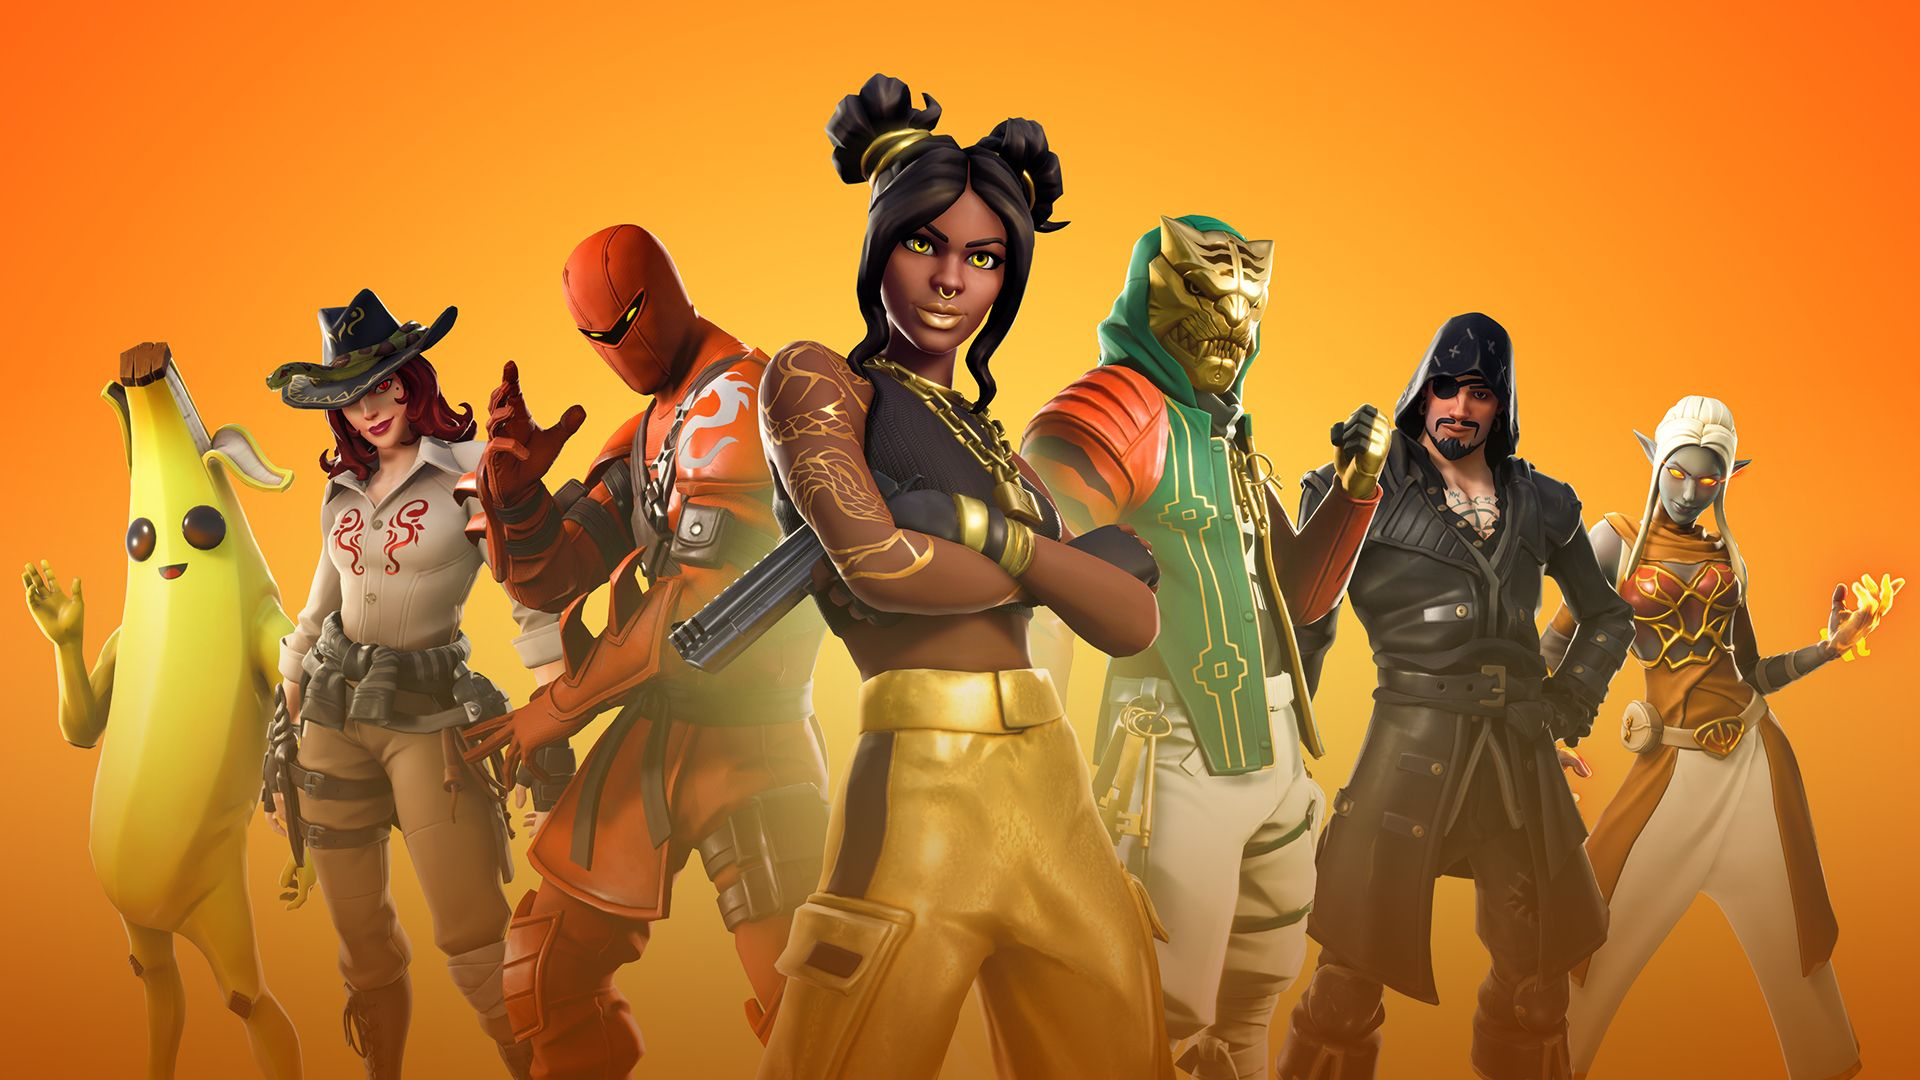 Claim your season 8 Free Skin  Use our Latest Free Fortnite Skins